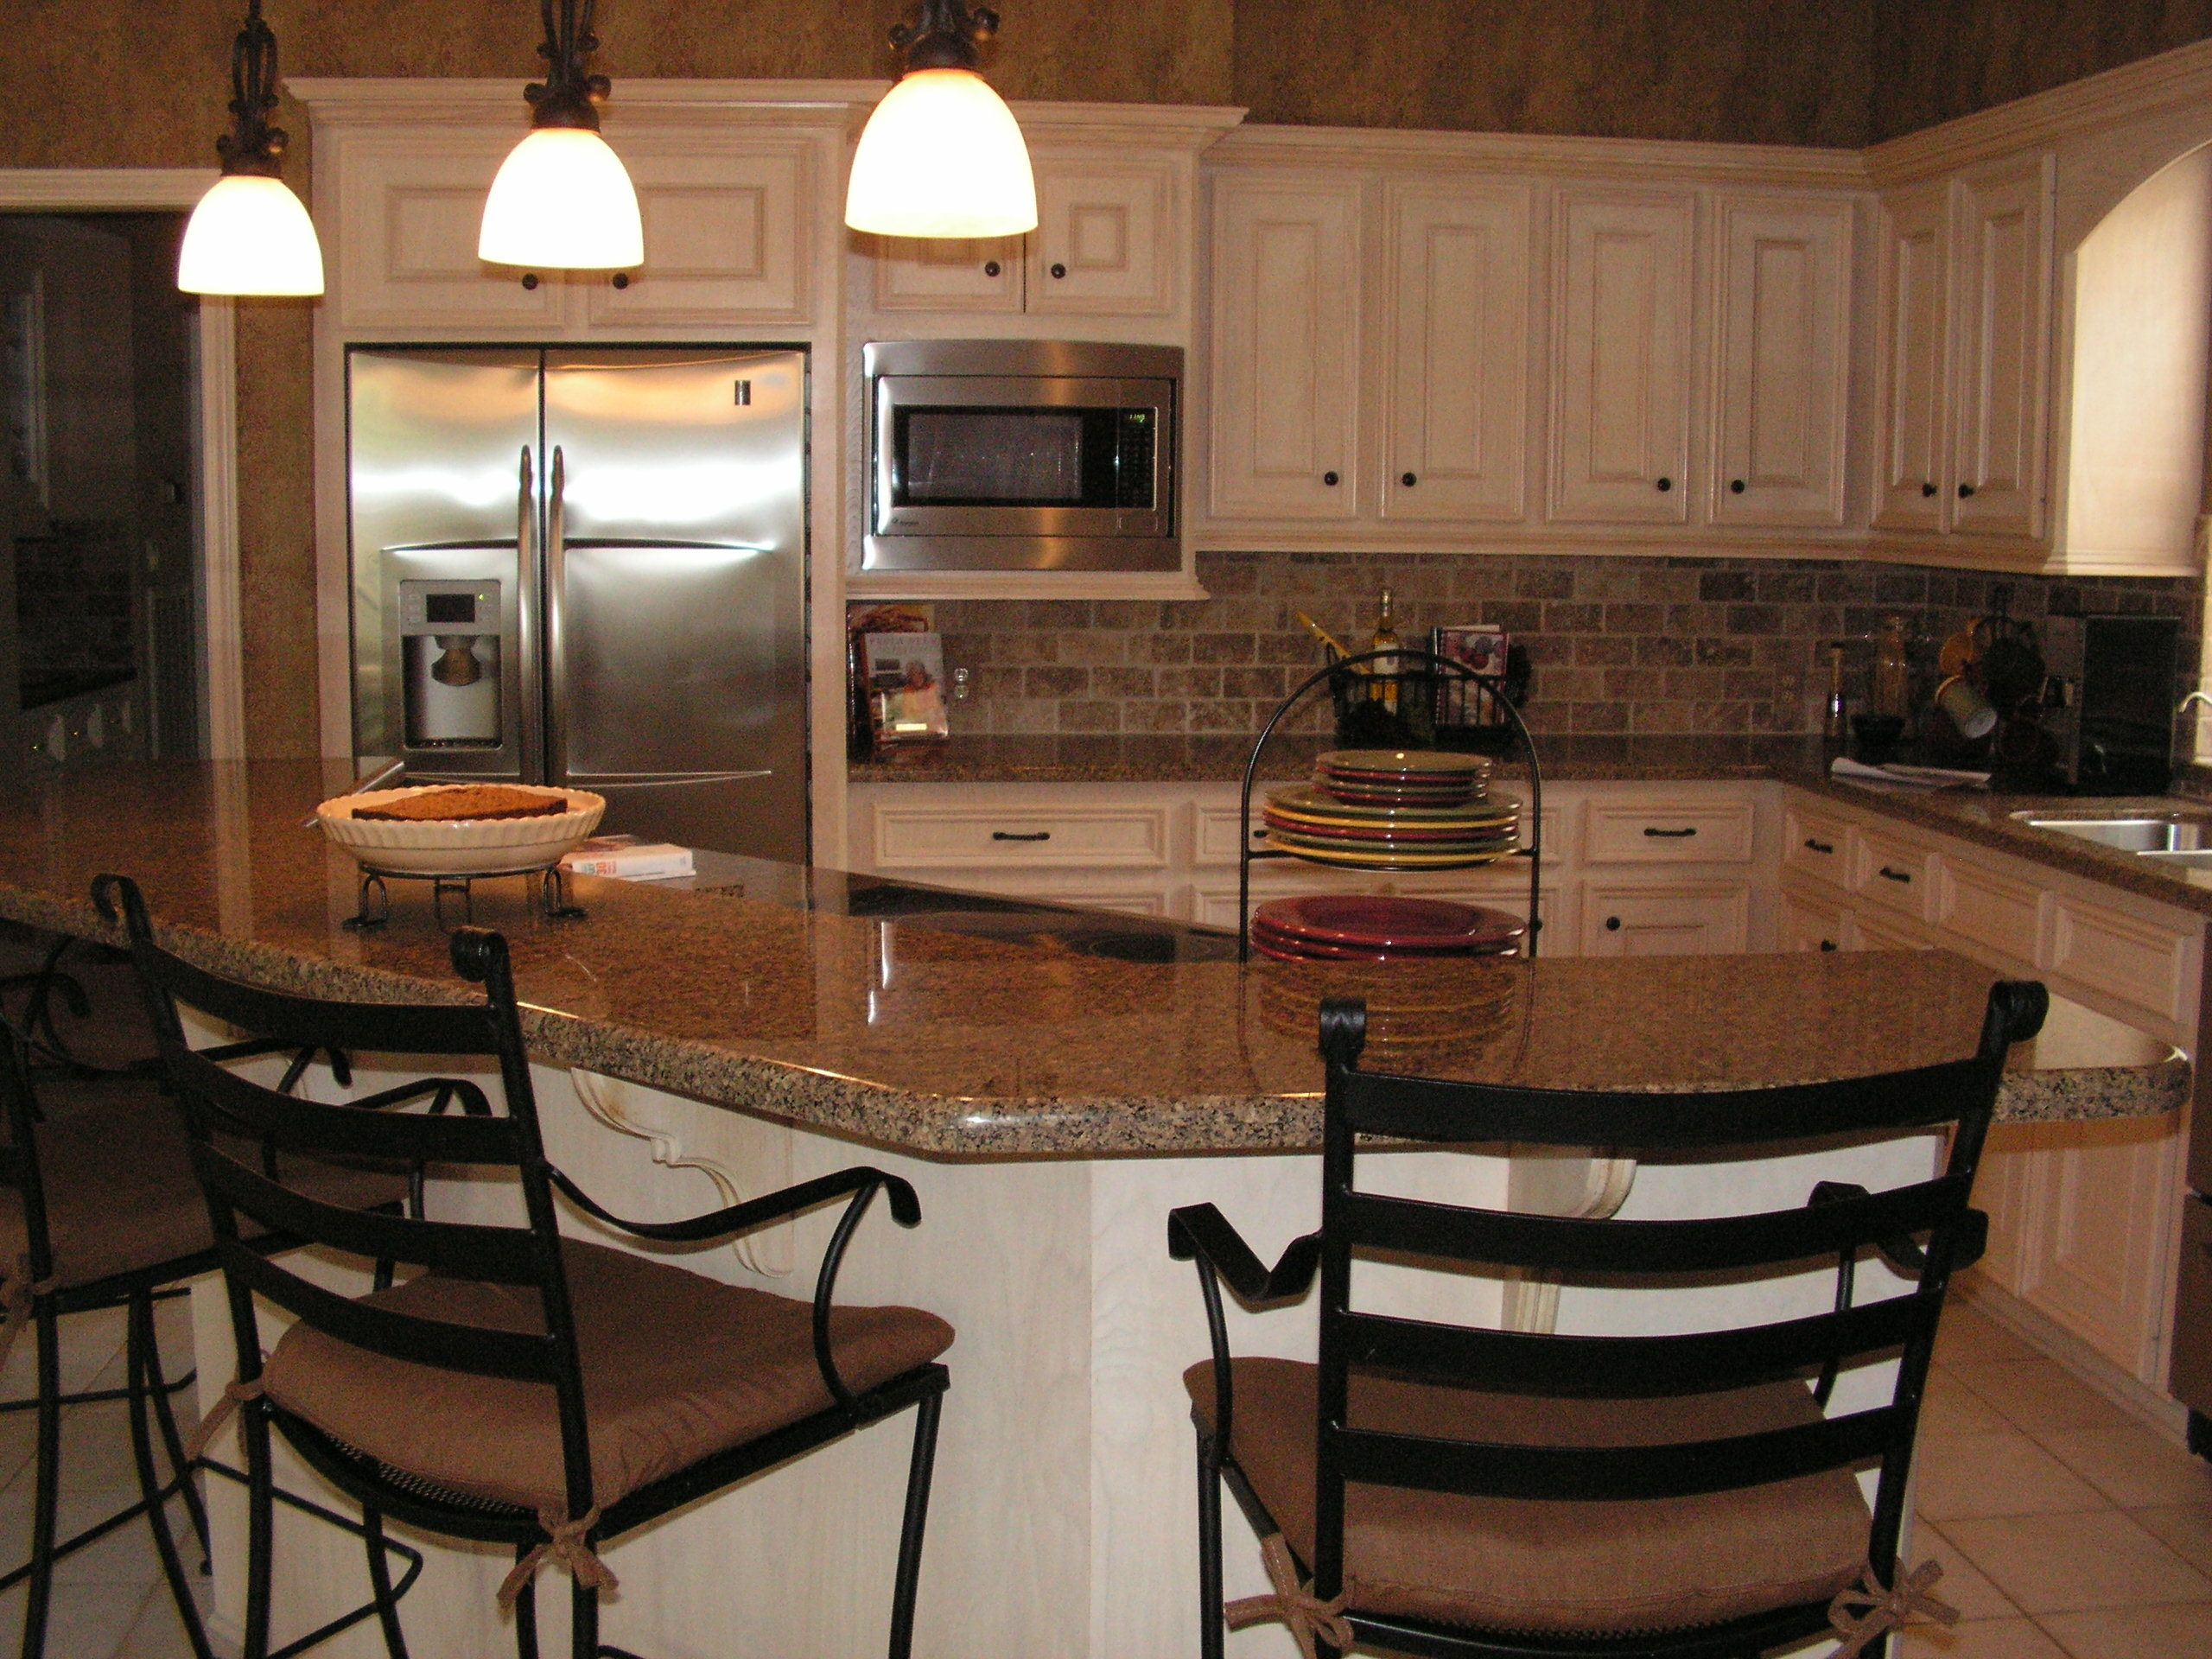 New Kitchen Remodel Kitchen Remodel With New Granite Countertops Tumbled Marble